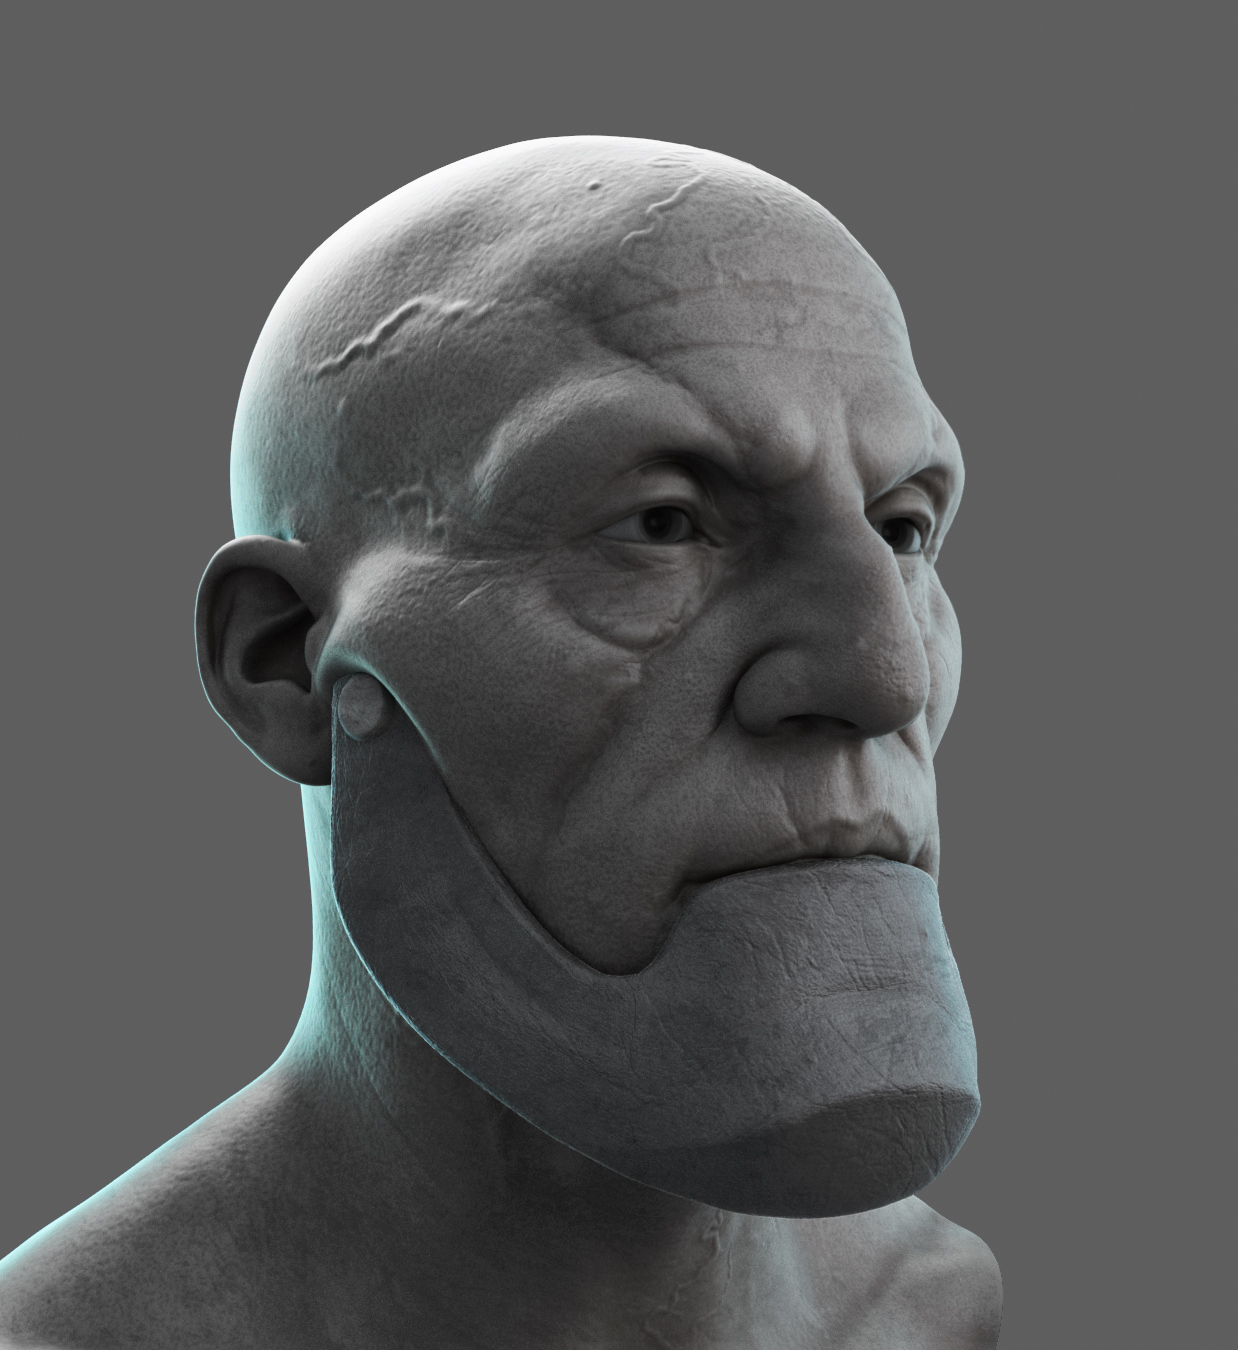 My Last Zbrush Works Zbrushcentral